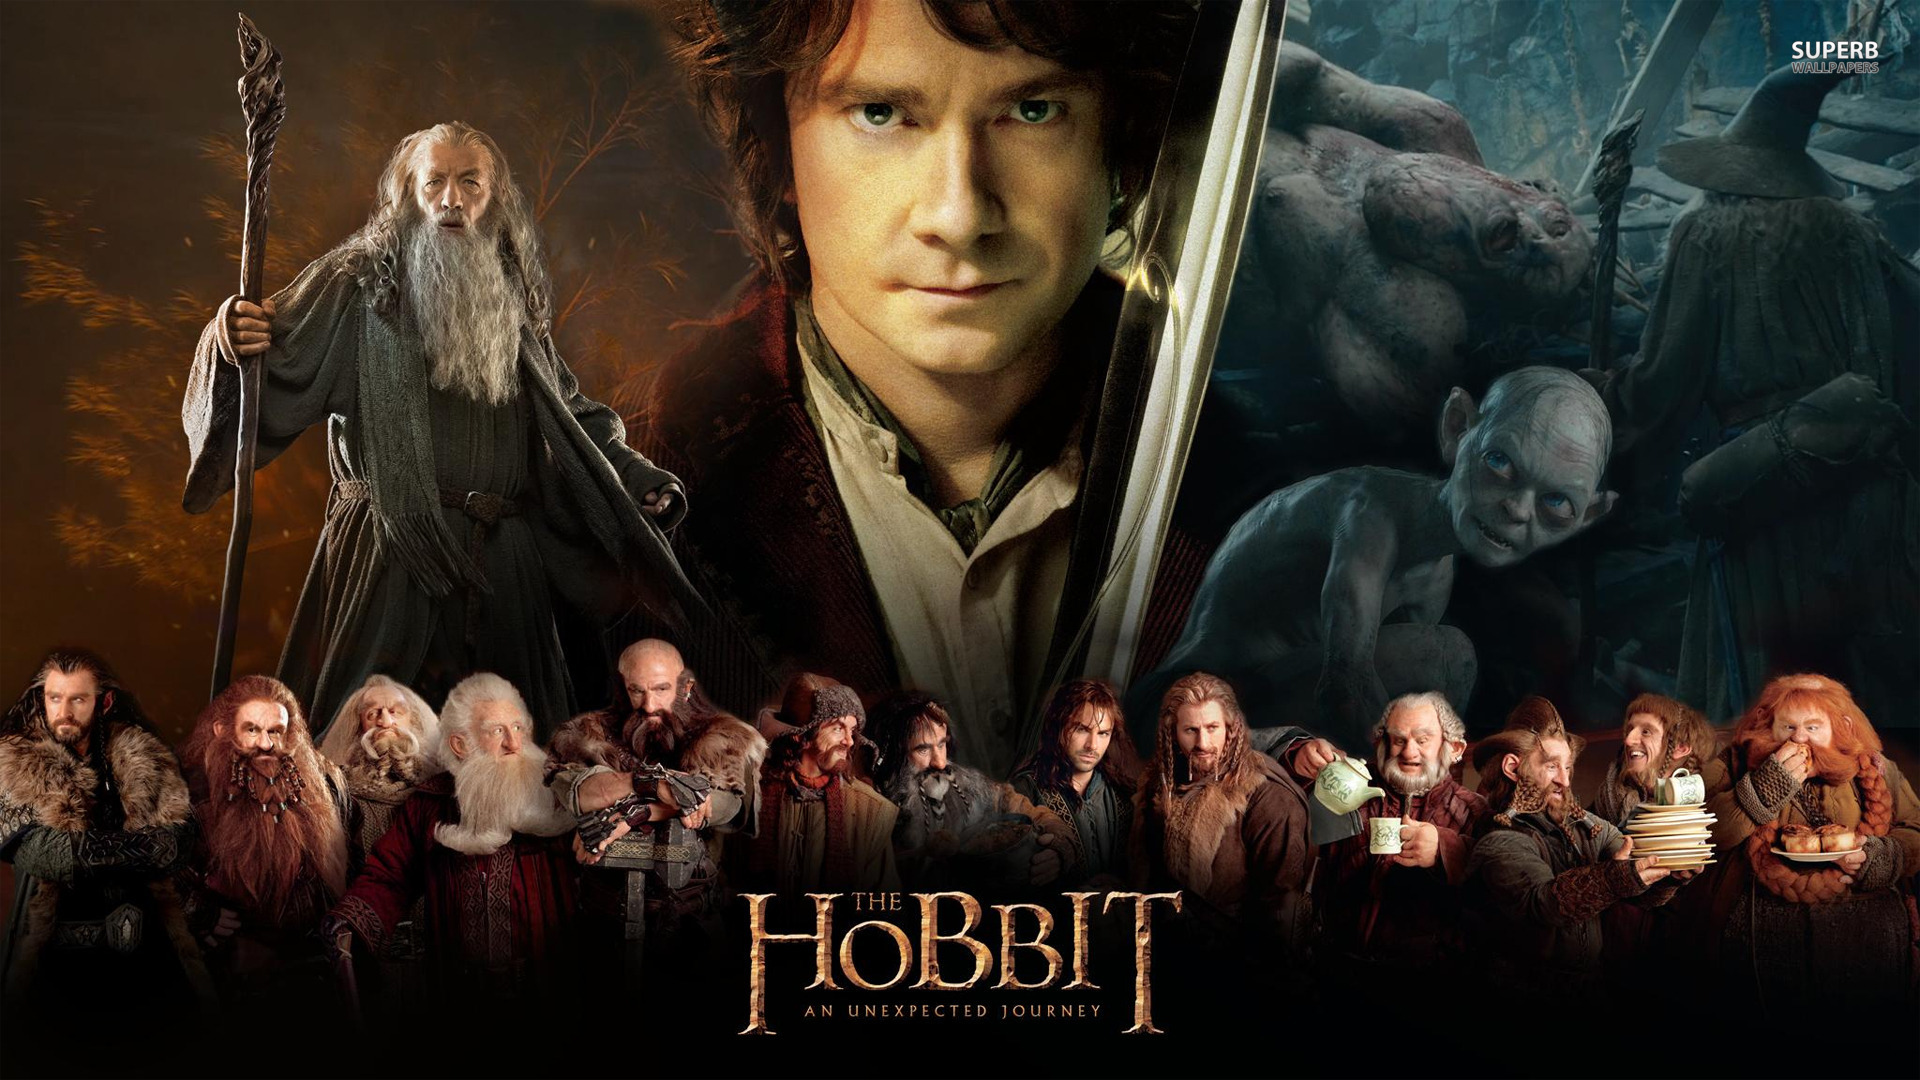 http://vignette2.wikia.nocookie.net/lotr/images/1/1e/The-hobbit-an-unexpected-journey.jpg/revision/latest?cb=20141223163021